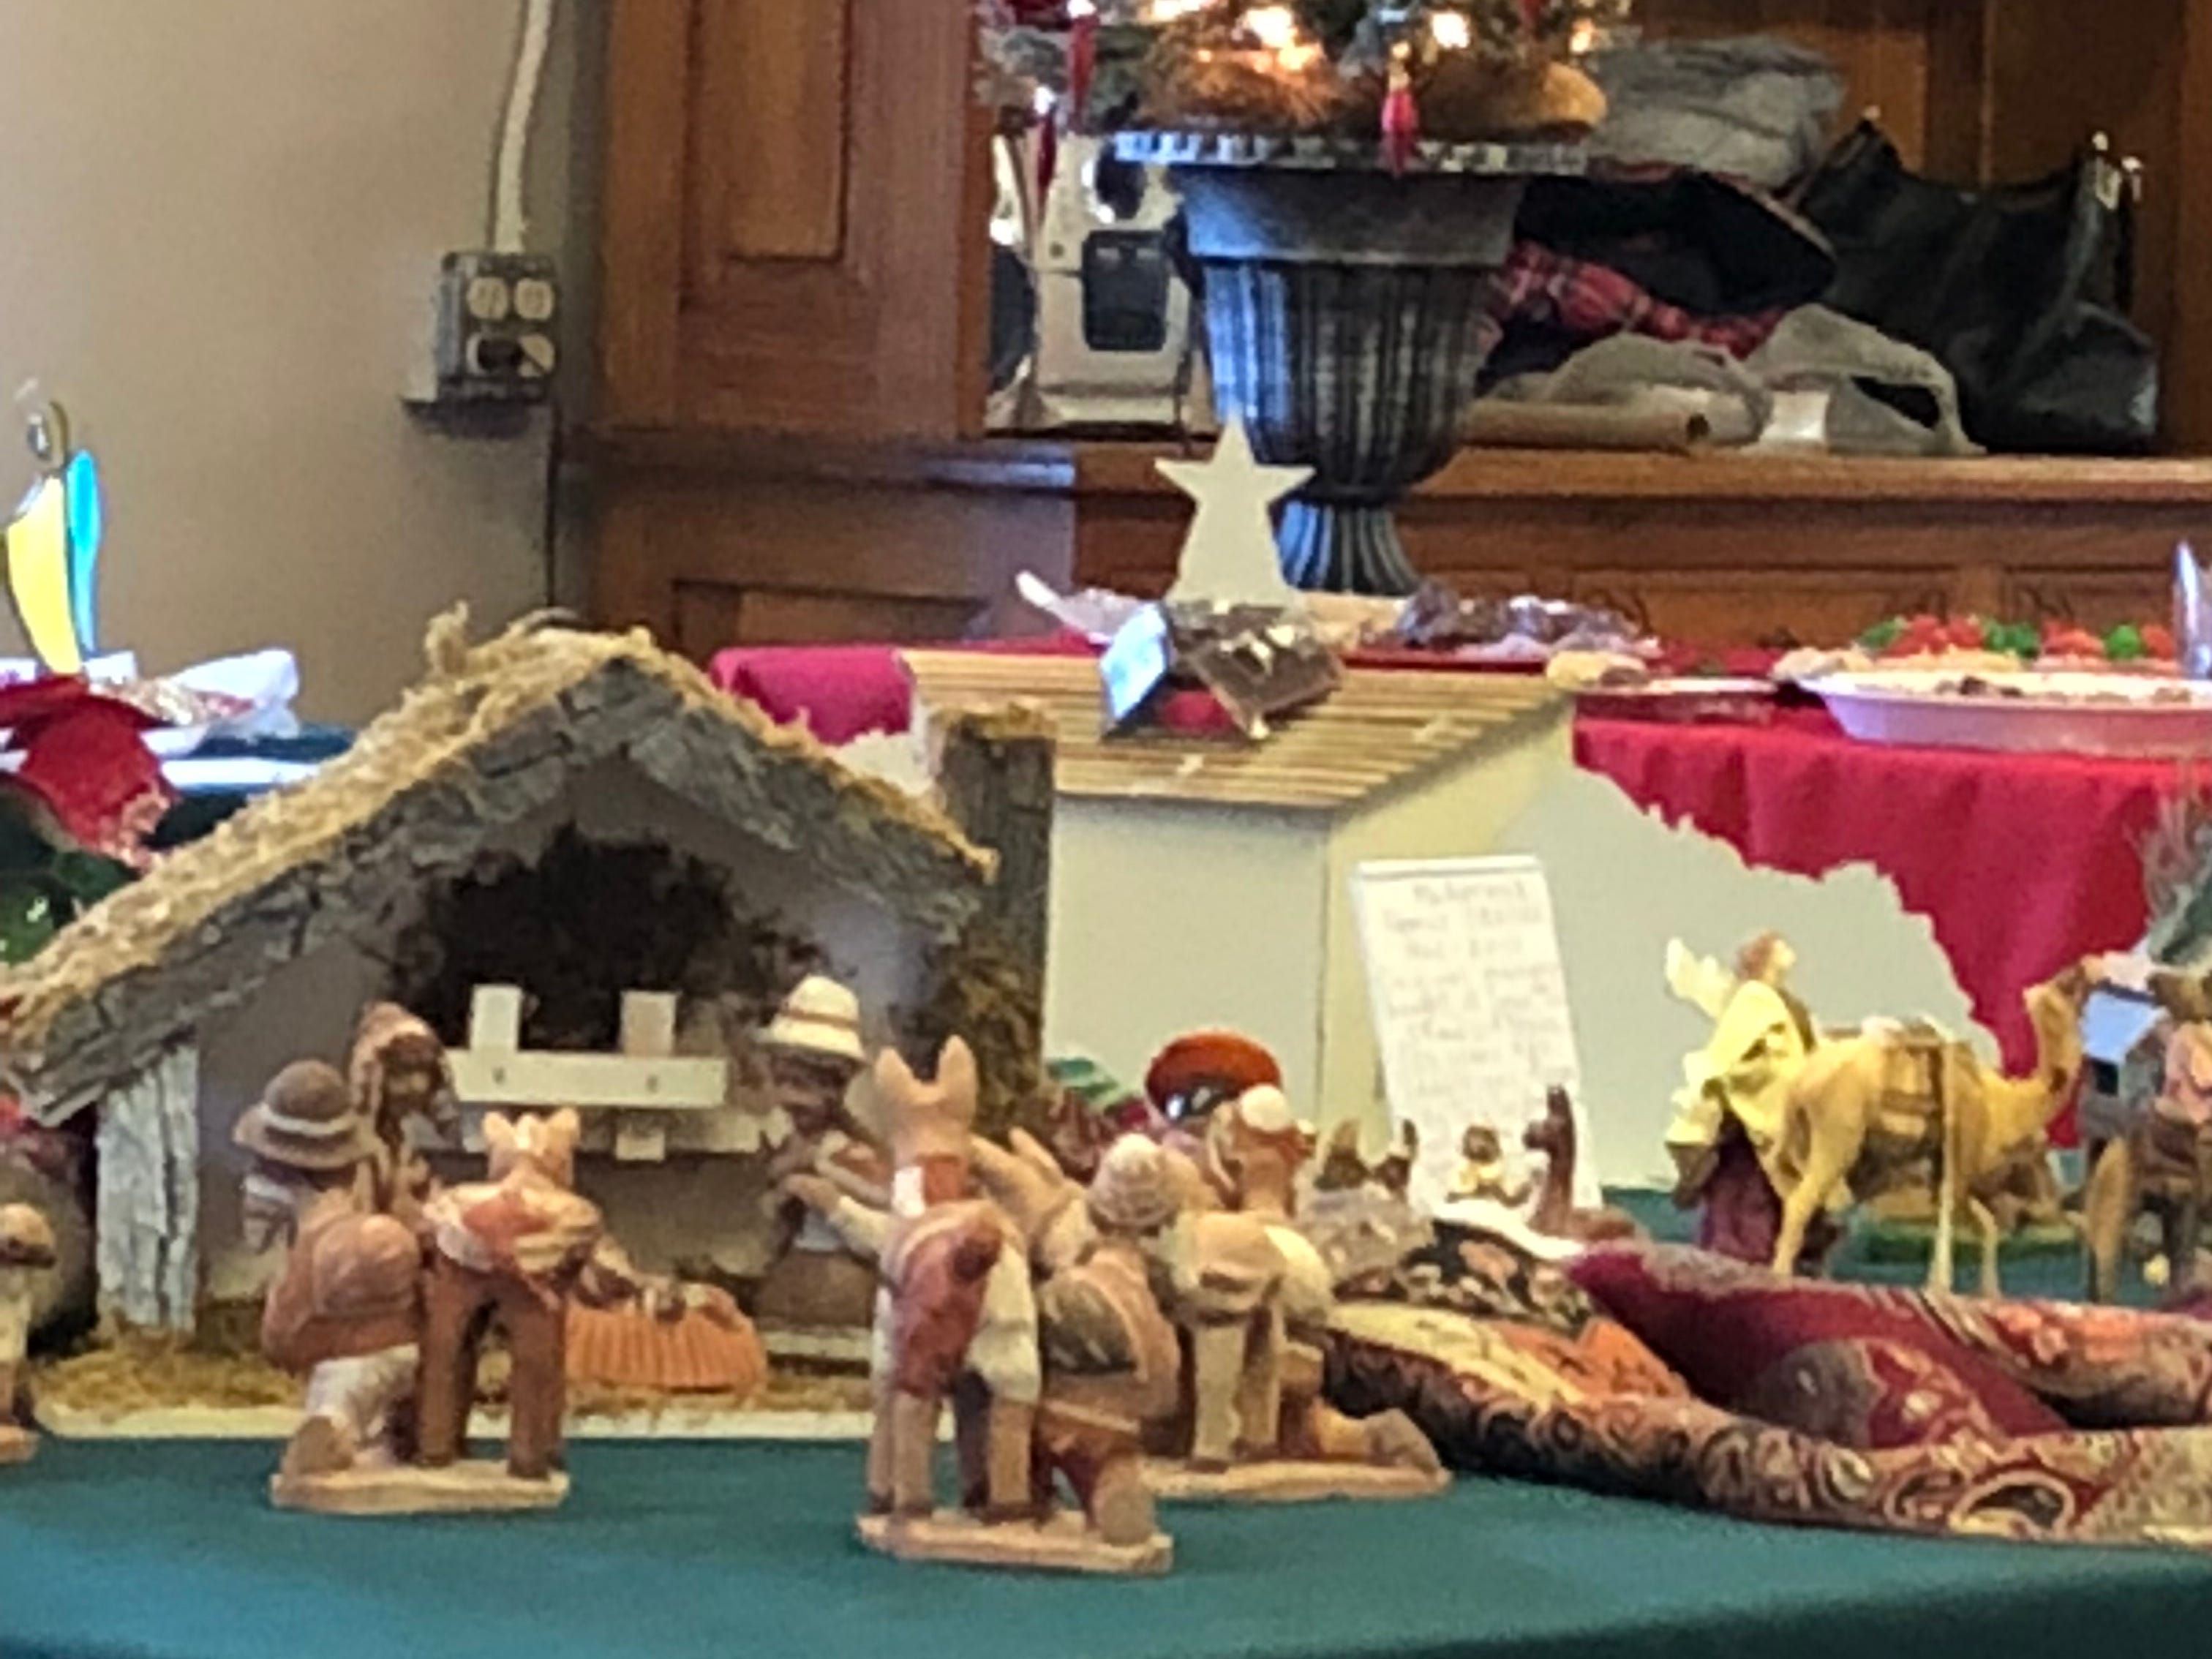 Families may add their creches to display at Holy Mount Episcopal Church Dec. 15